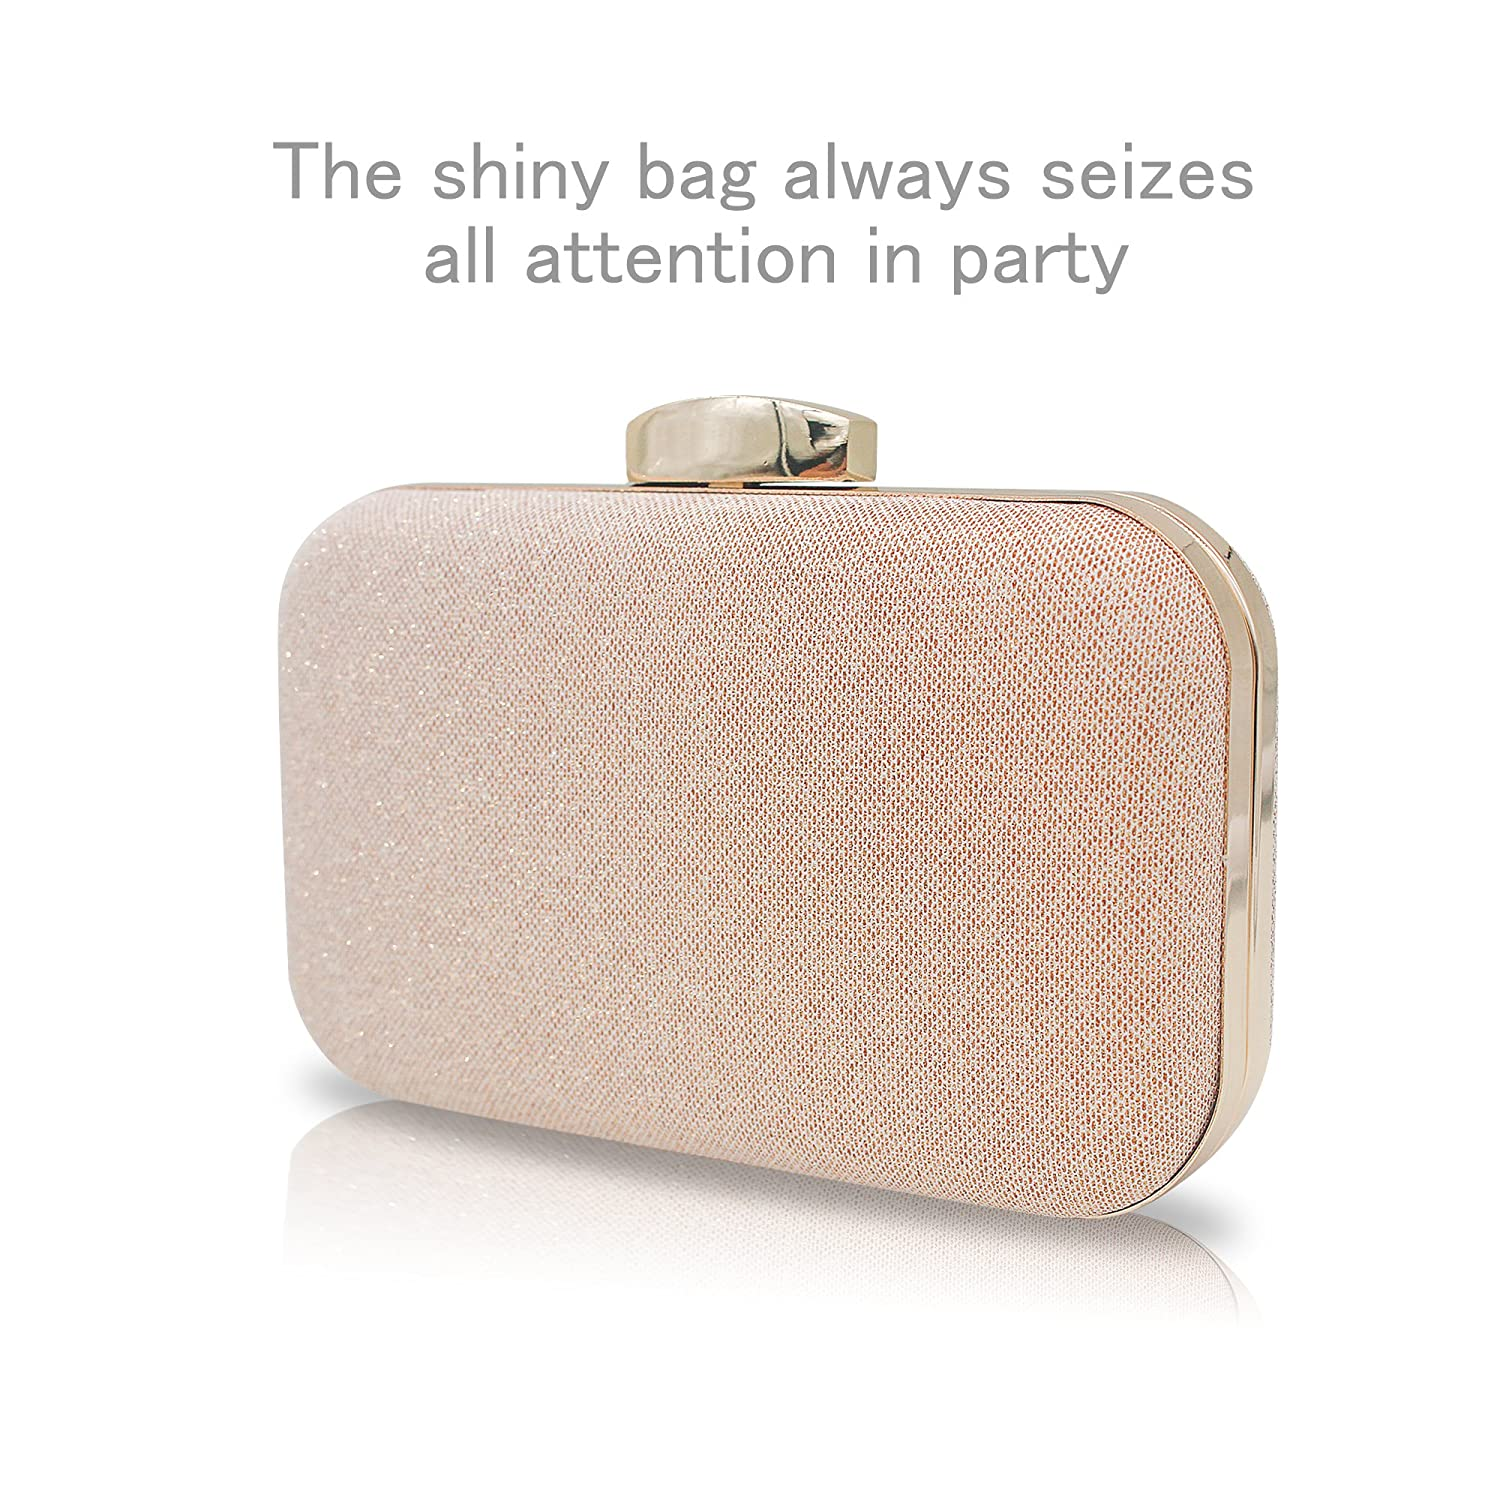 fafa6709bd06 Artemisiris elegant rose gold clutch purse crossbody bags jpg 1500x1500 Gold  clutch bags